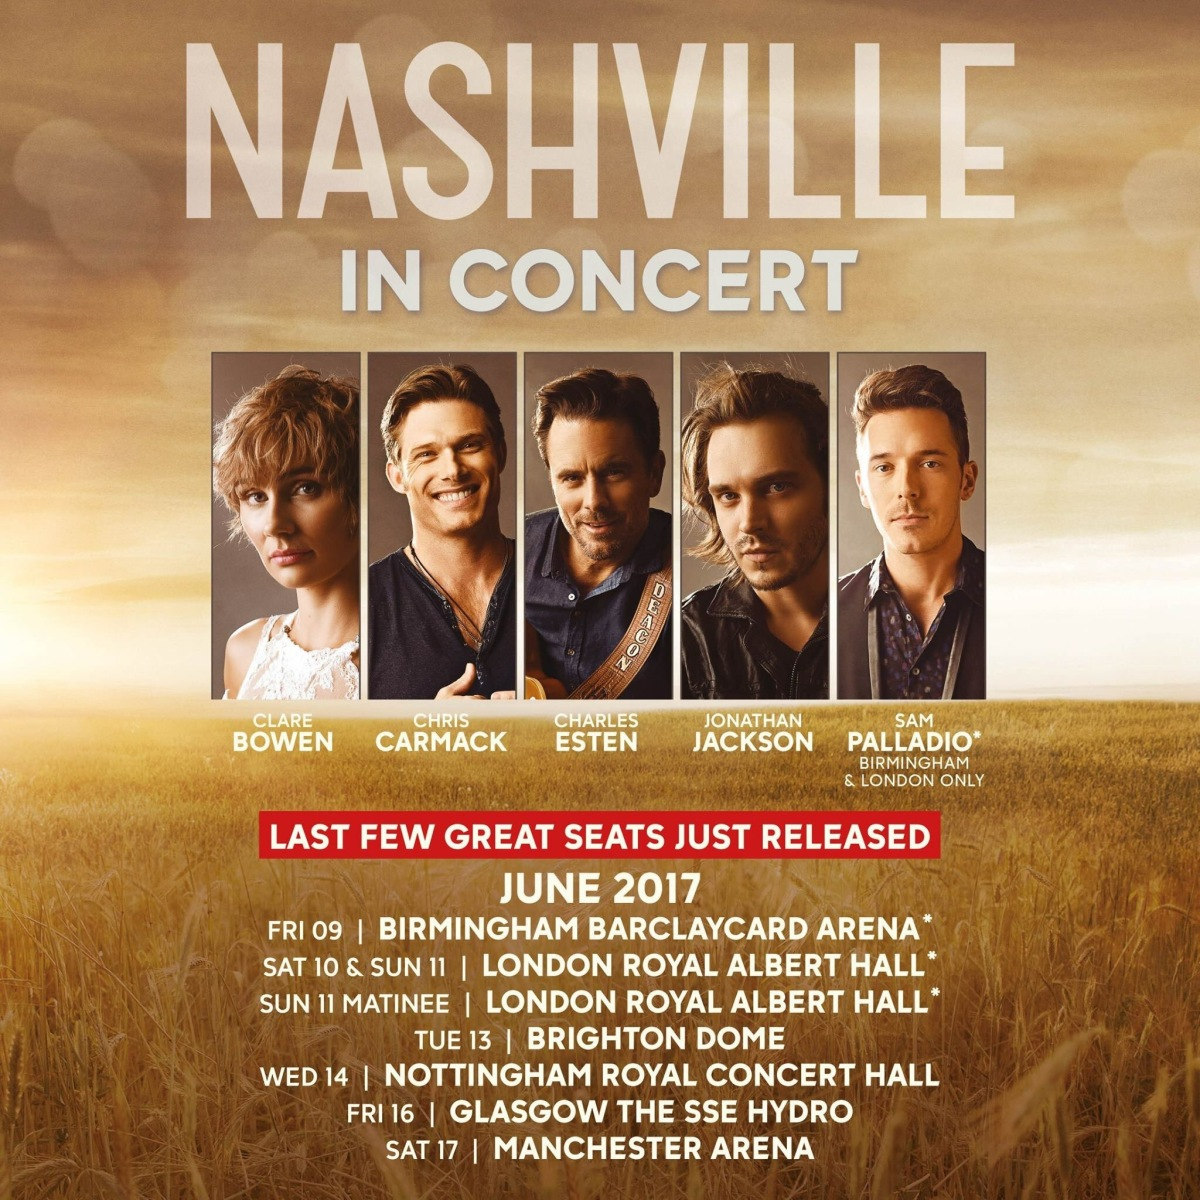 Nashville Live In Concert At The Royal Albert Hall - Review